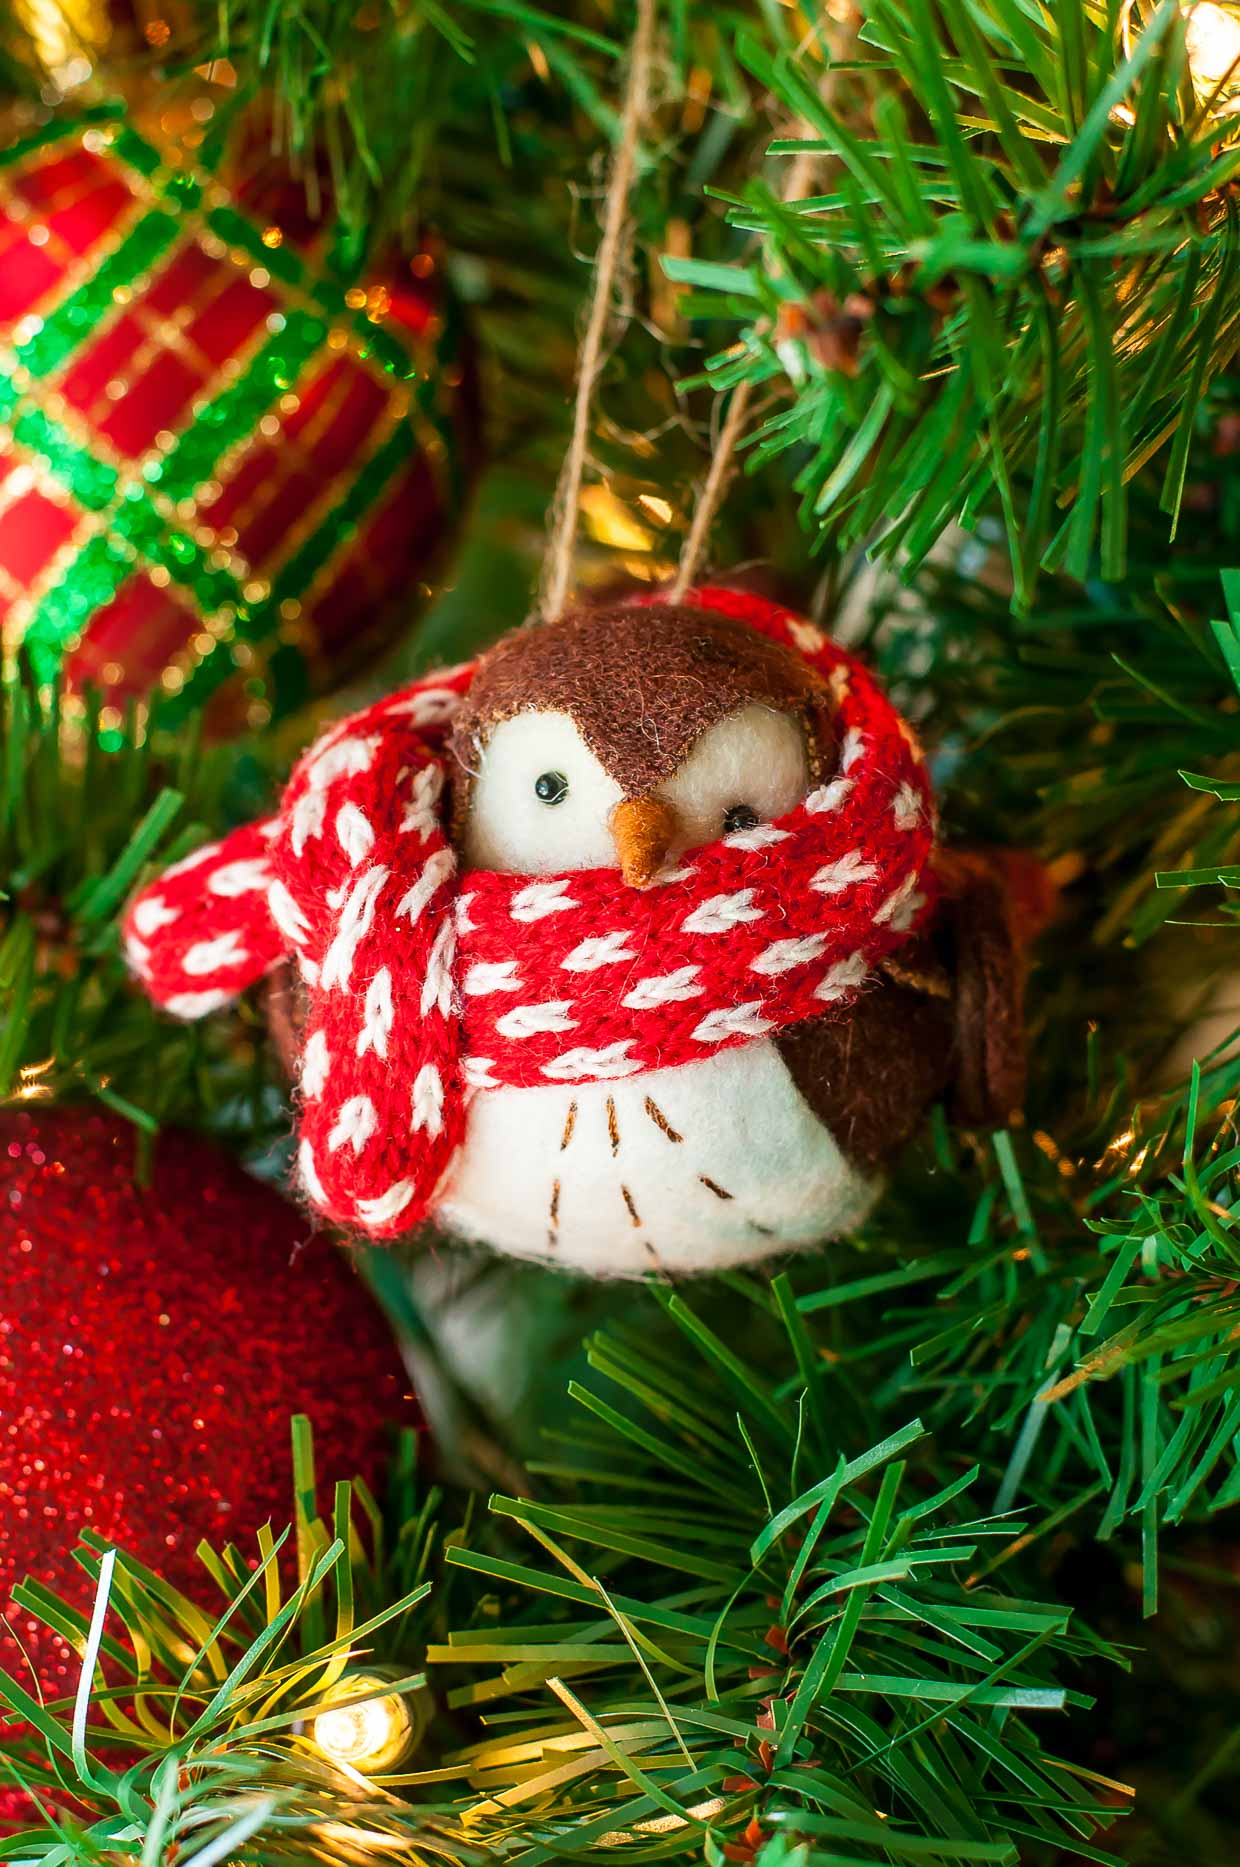 Christmas Tree-dition 2016: Our family's favorite holiday tradition - Bird Ornament